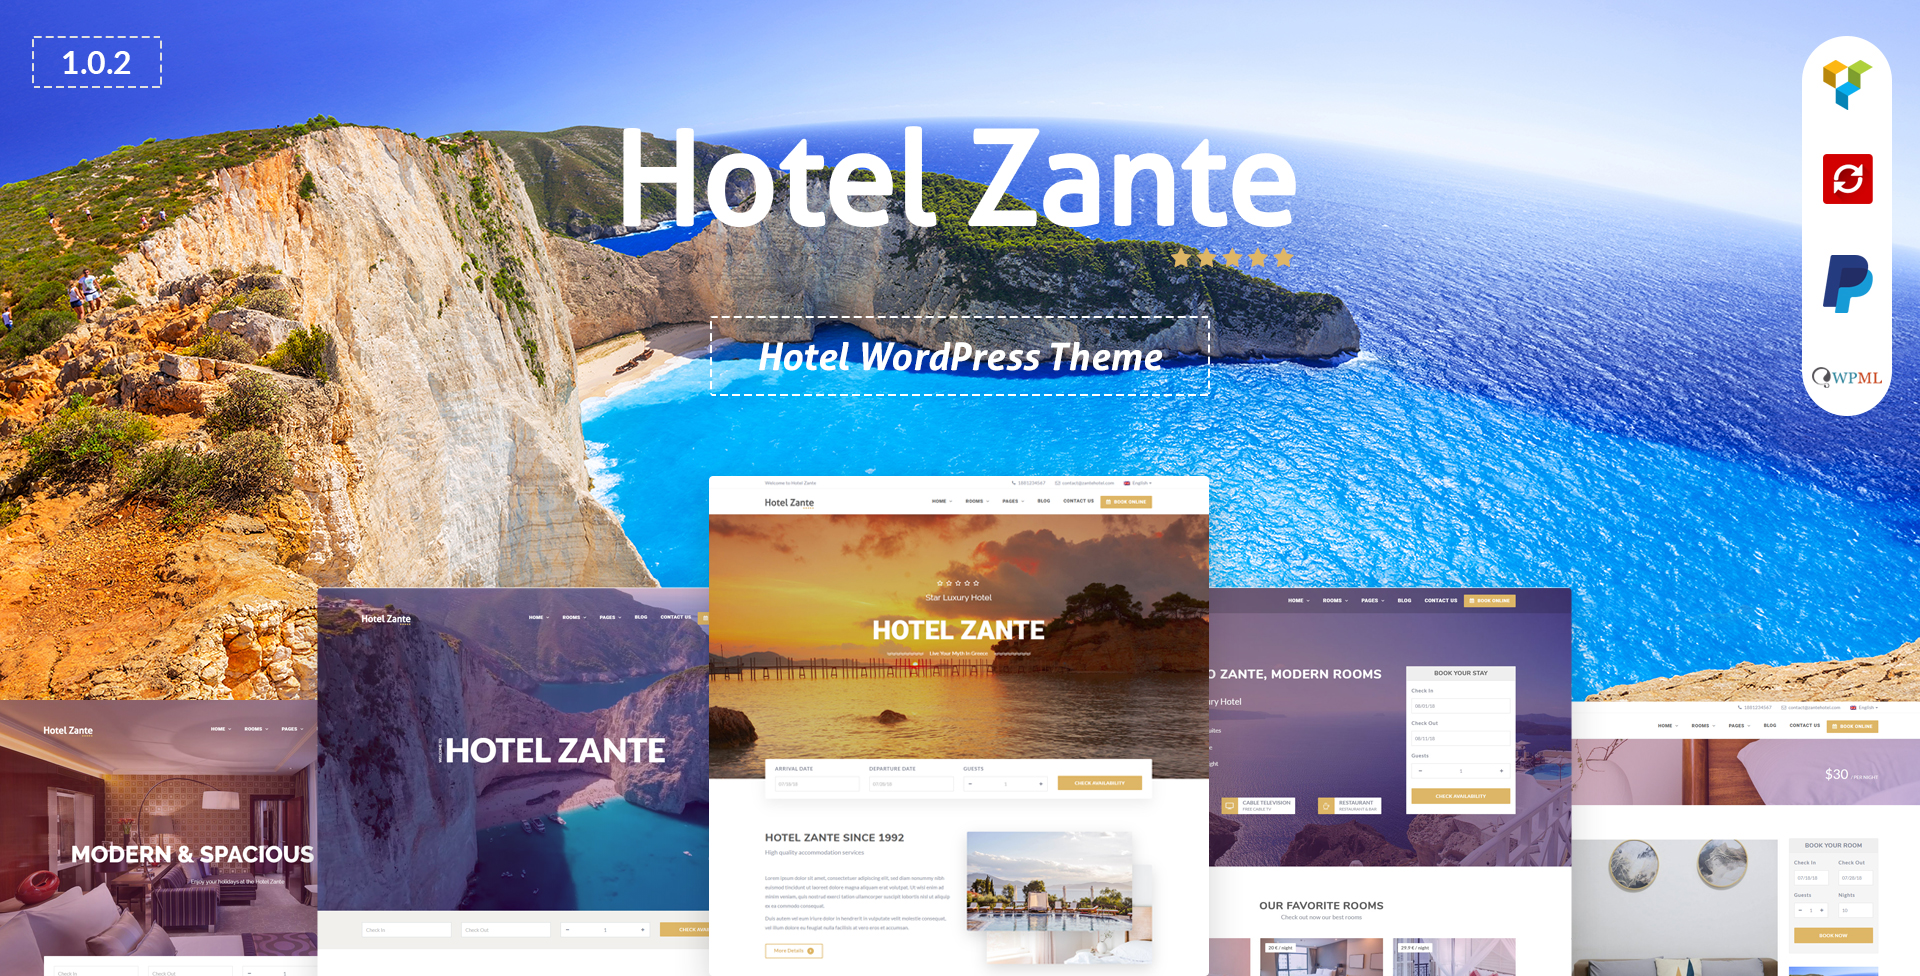 Hotel Zante – Hotel WordPress Theme